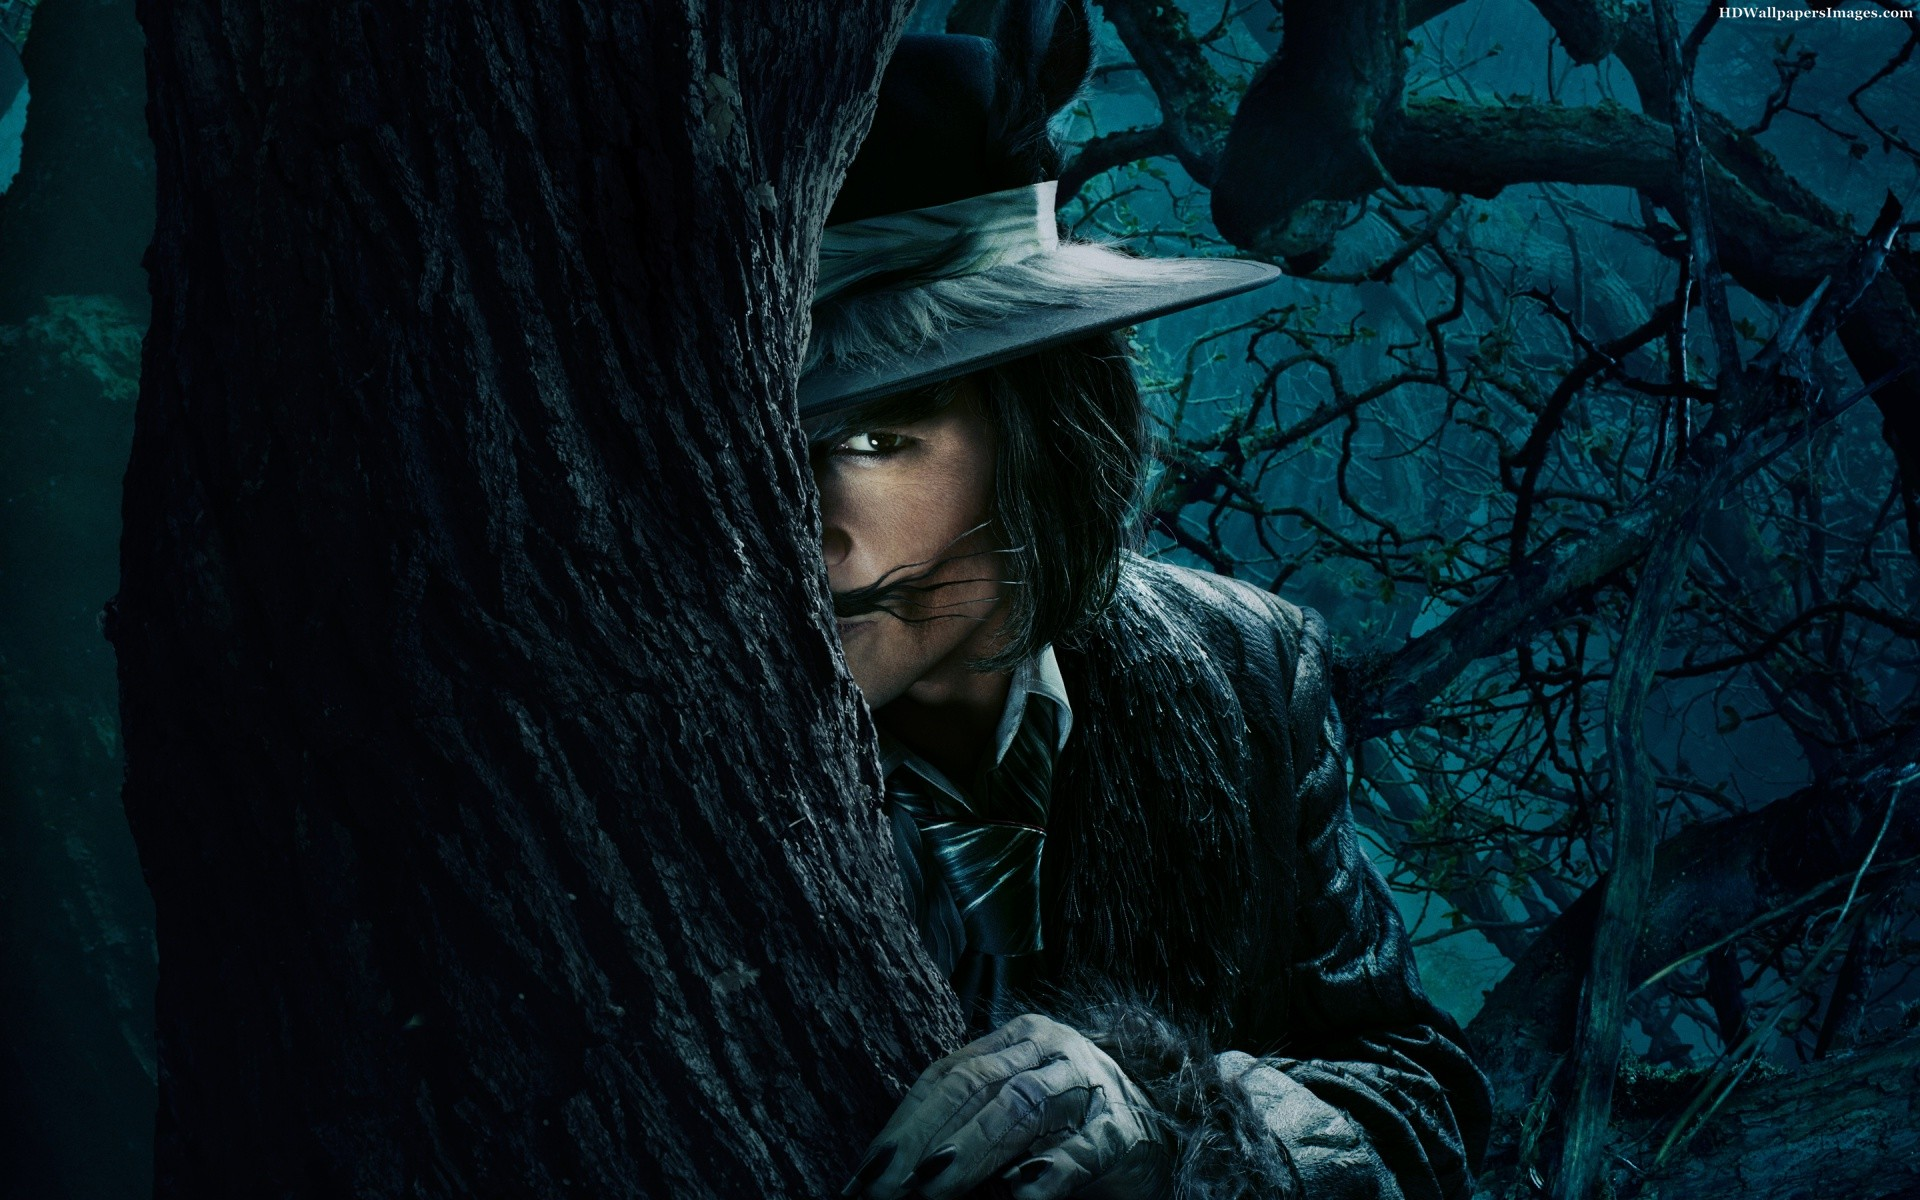 Johnny-Depp-Into-The-Woods-Images